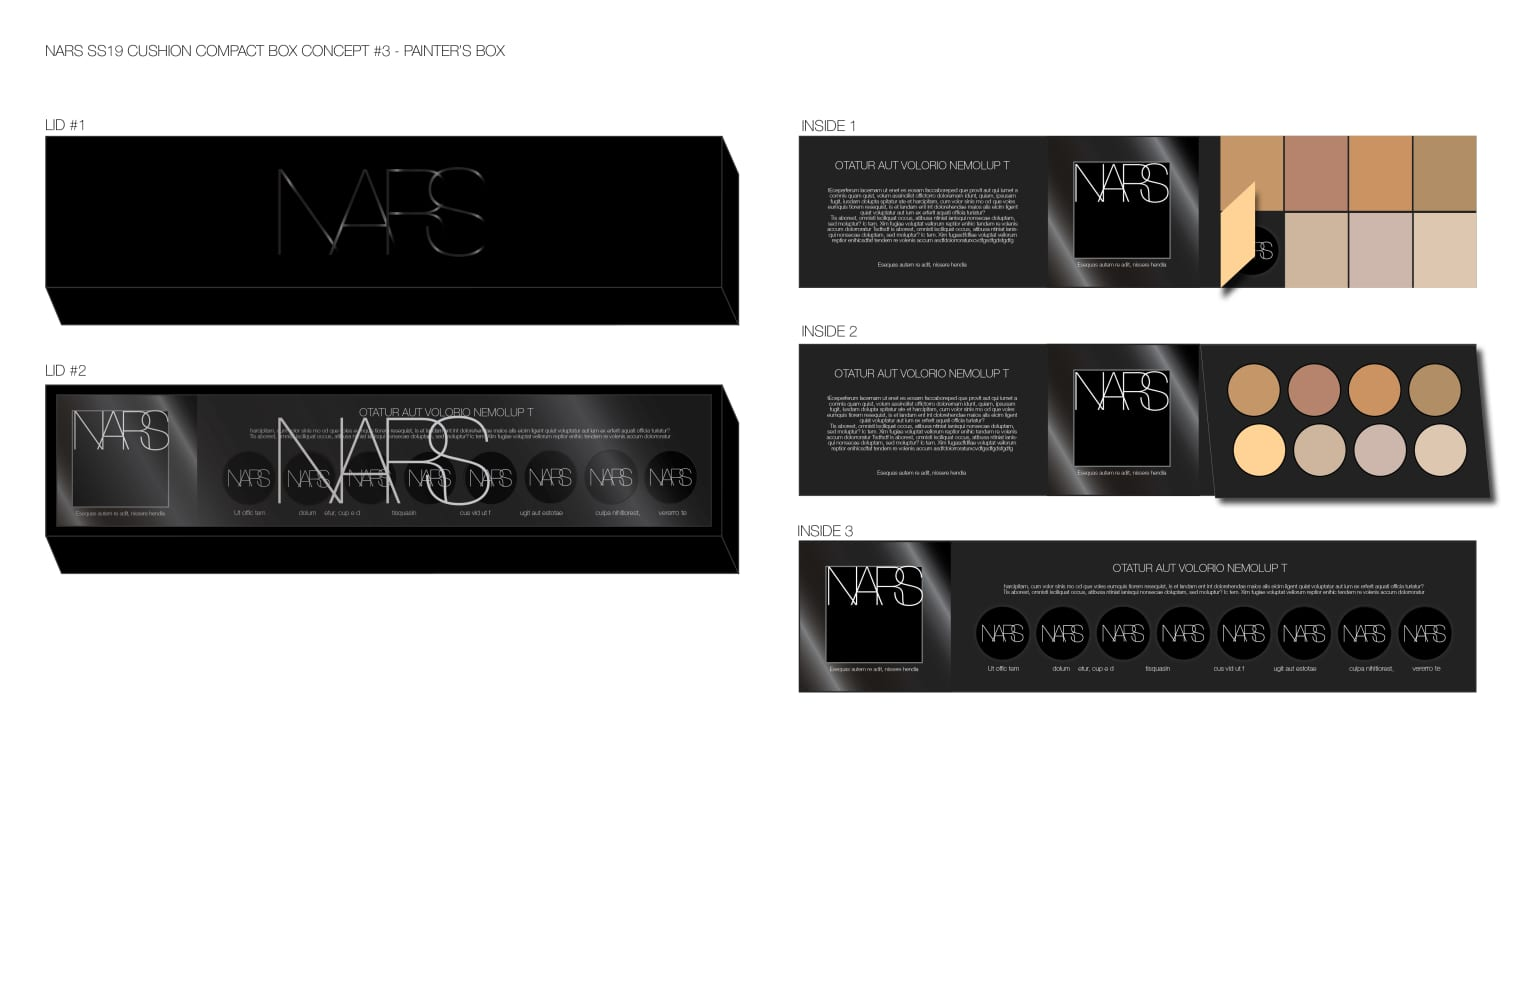 NARS 3D Influencer Kit Concepting